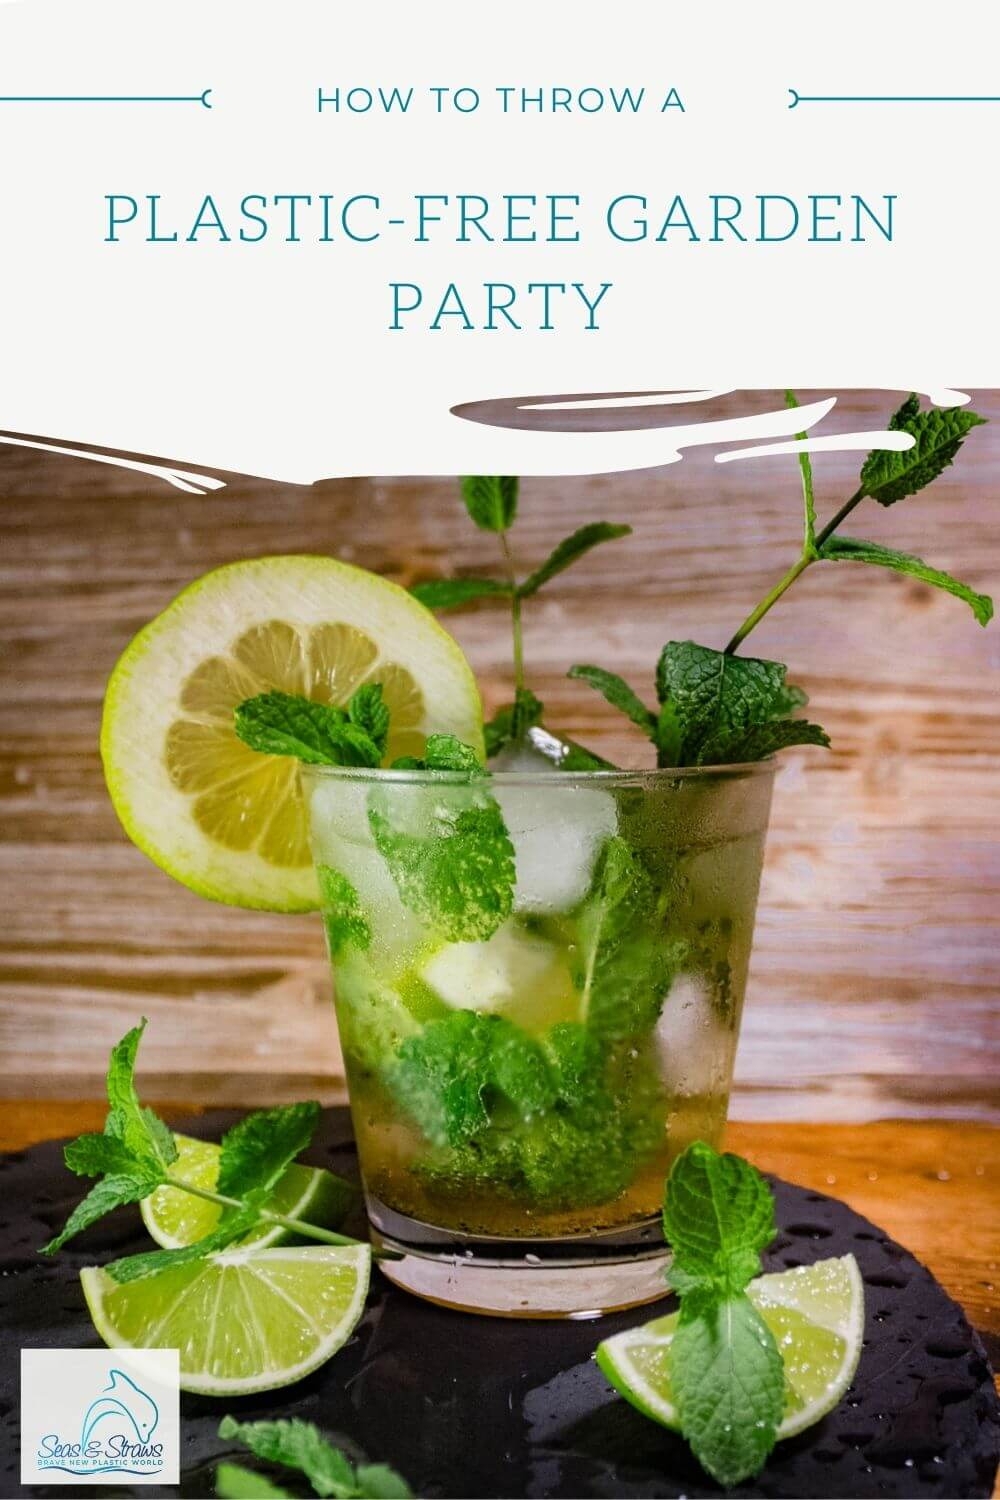 How to throw a plastic-free garden party. Seas & Straws